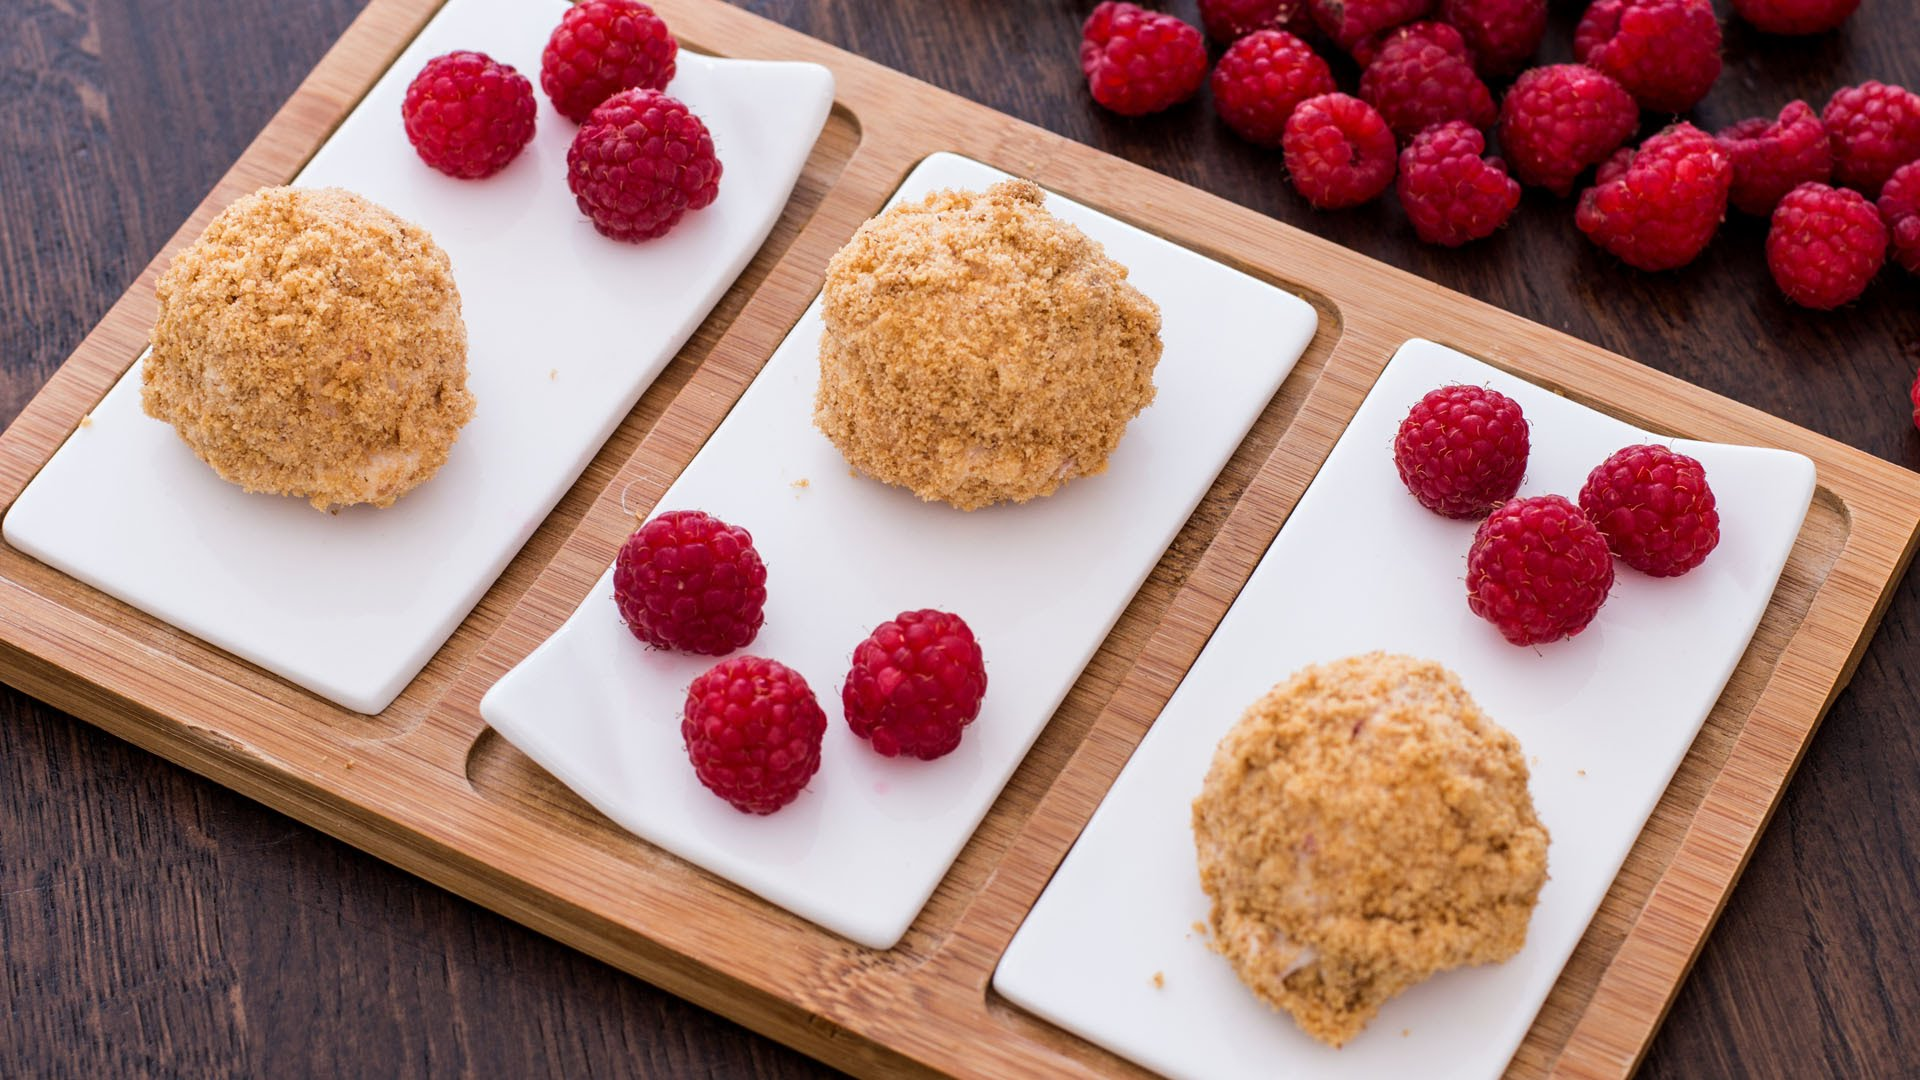 Make These No-Bake Raspberry Cheesecake Bites This Summer